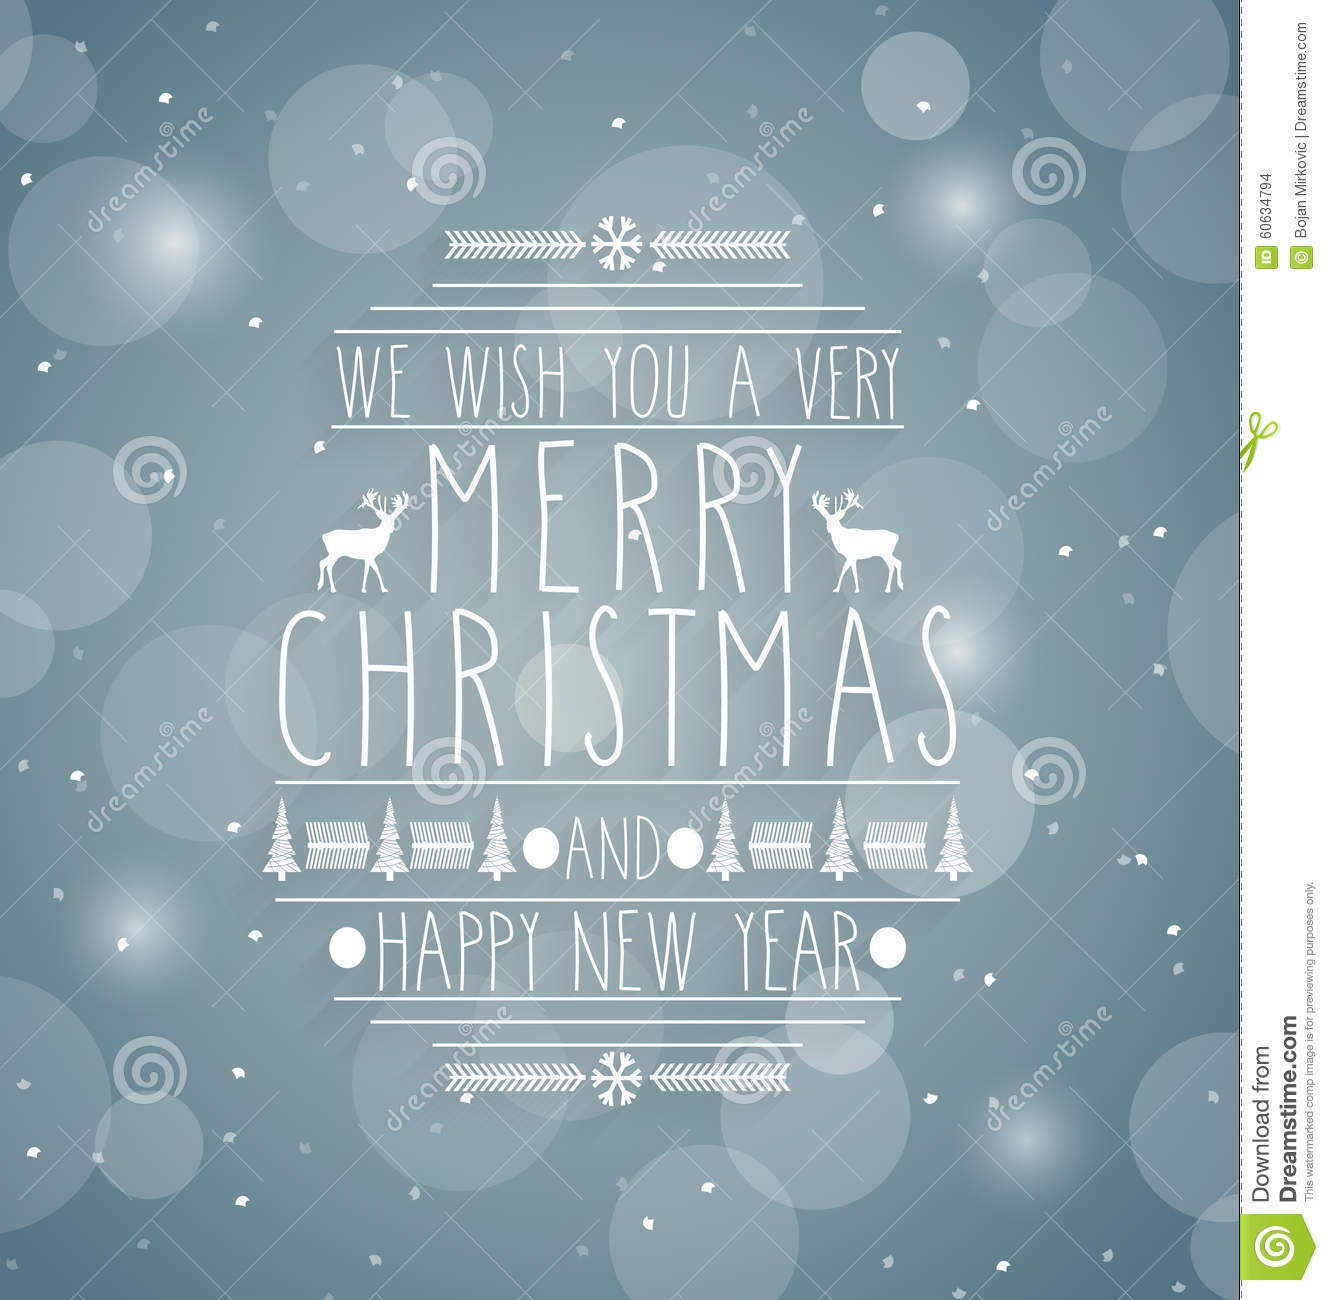 merry christmas retro abstract design greeting cardhandwritten text happy new year message